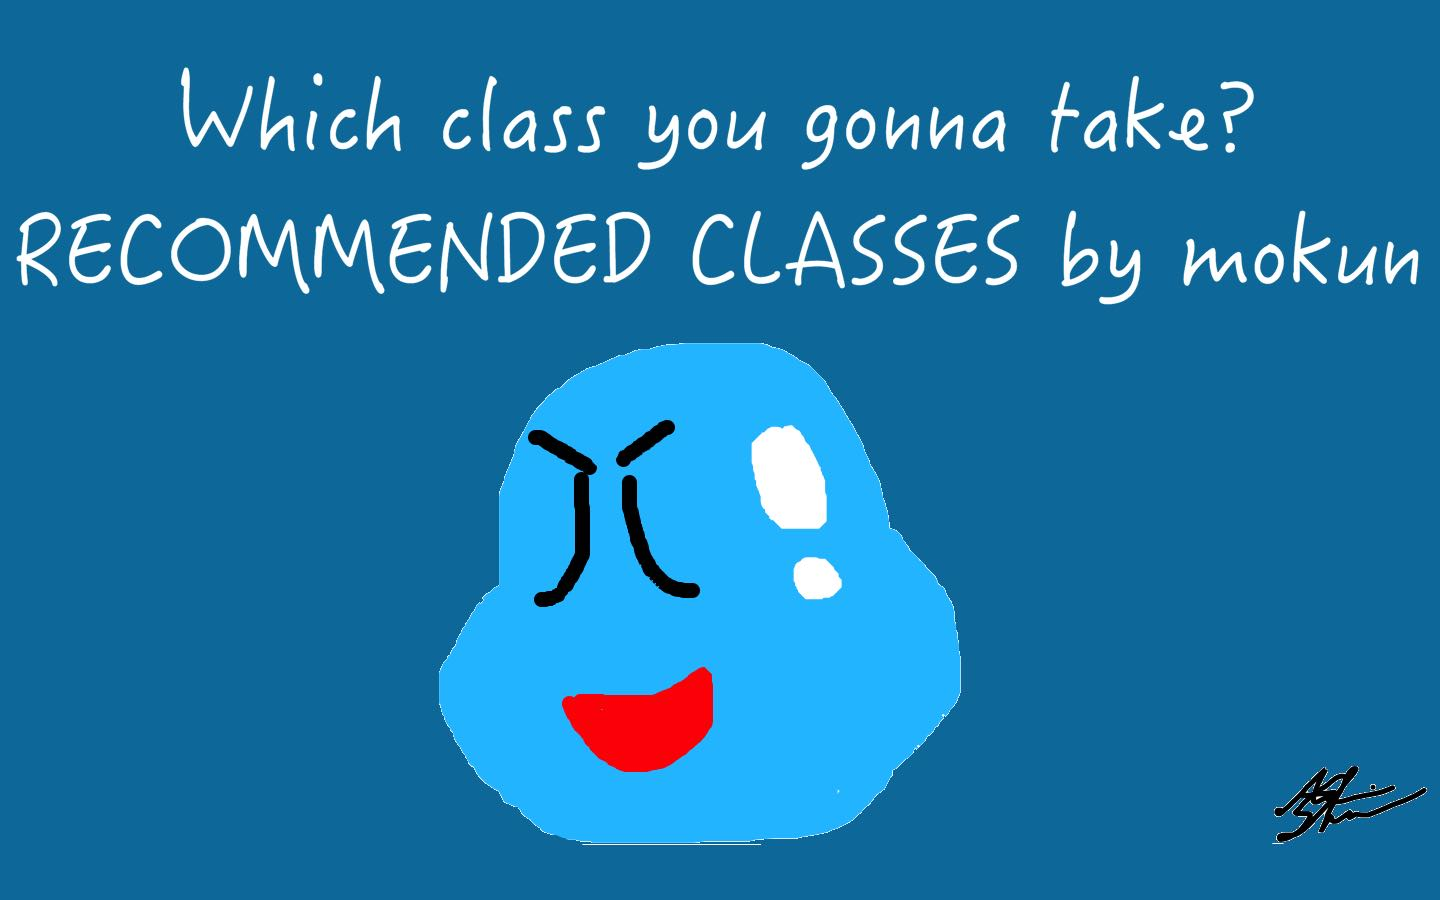 Recommended Classes